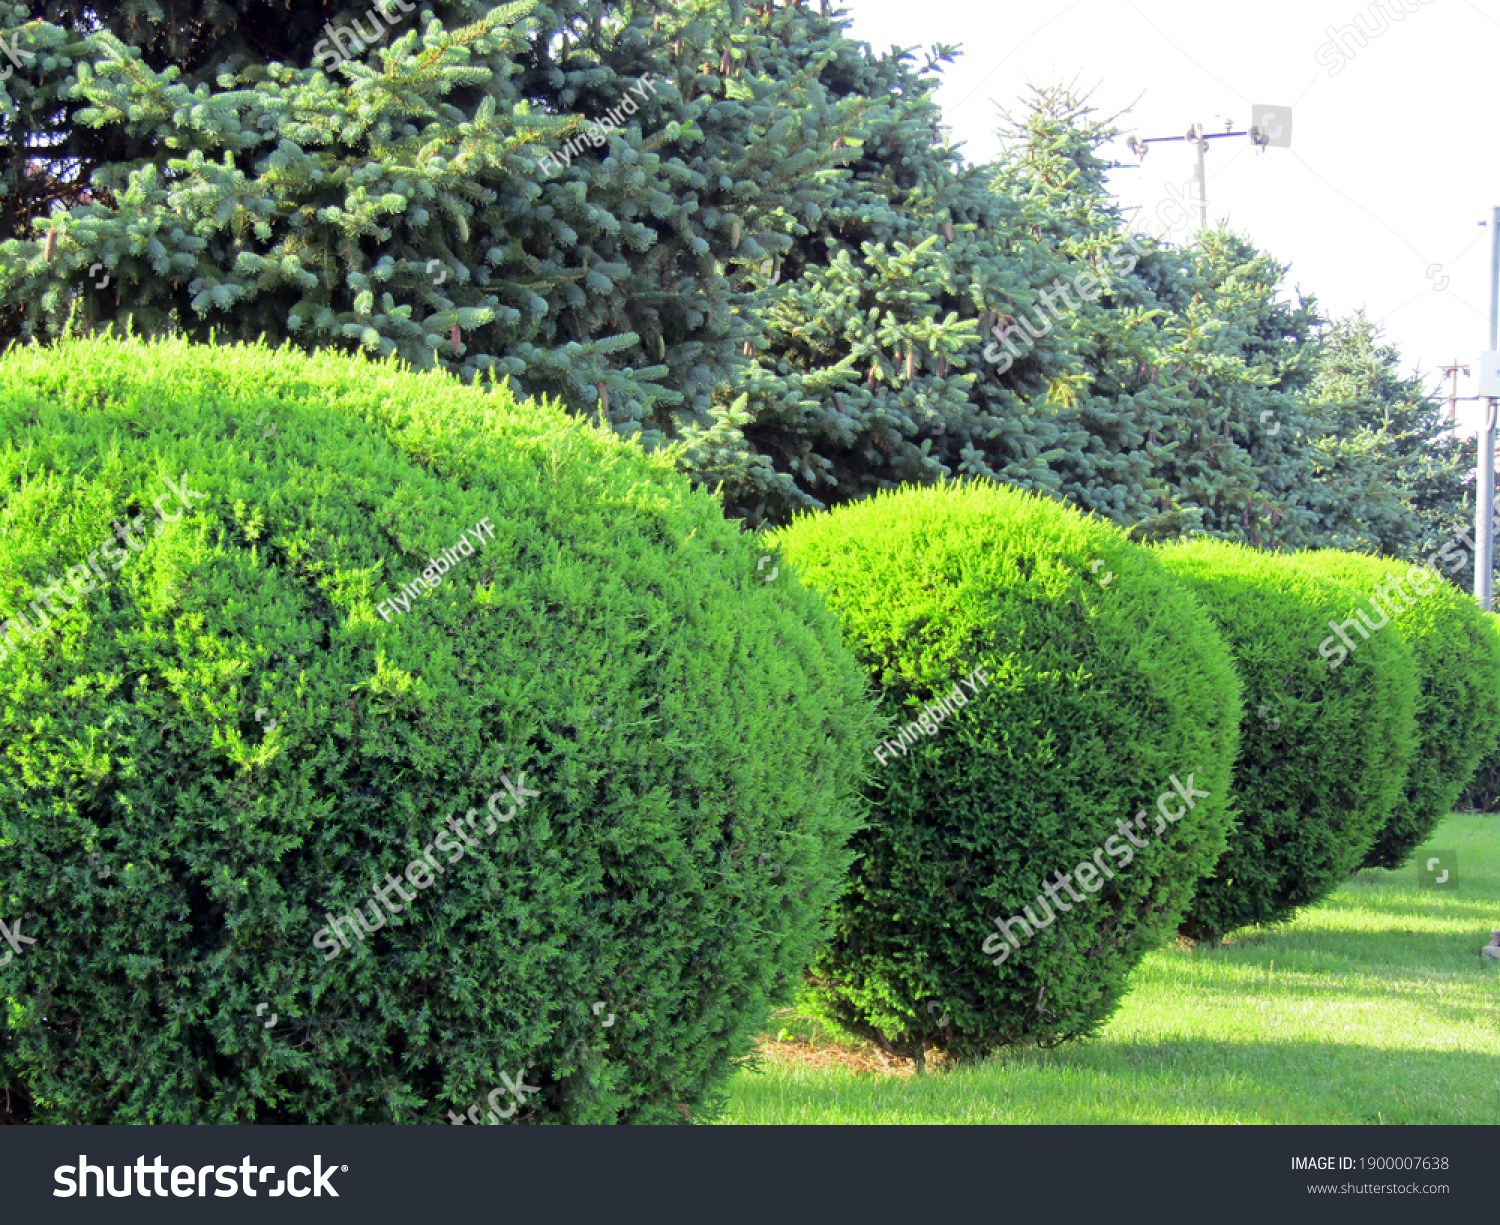 A row of spherically trimmed lush juniper shrub hedges growing on lawn in the front of a row of fir trees with a couple of power poles under sunshine in spring #1900007638